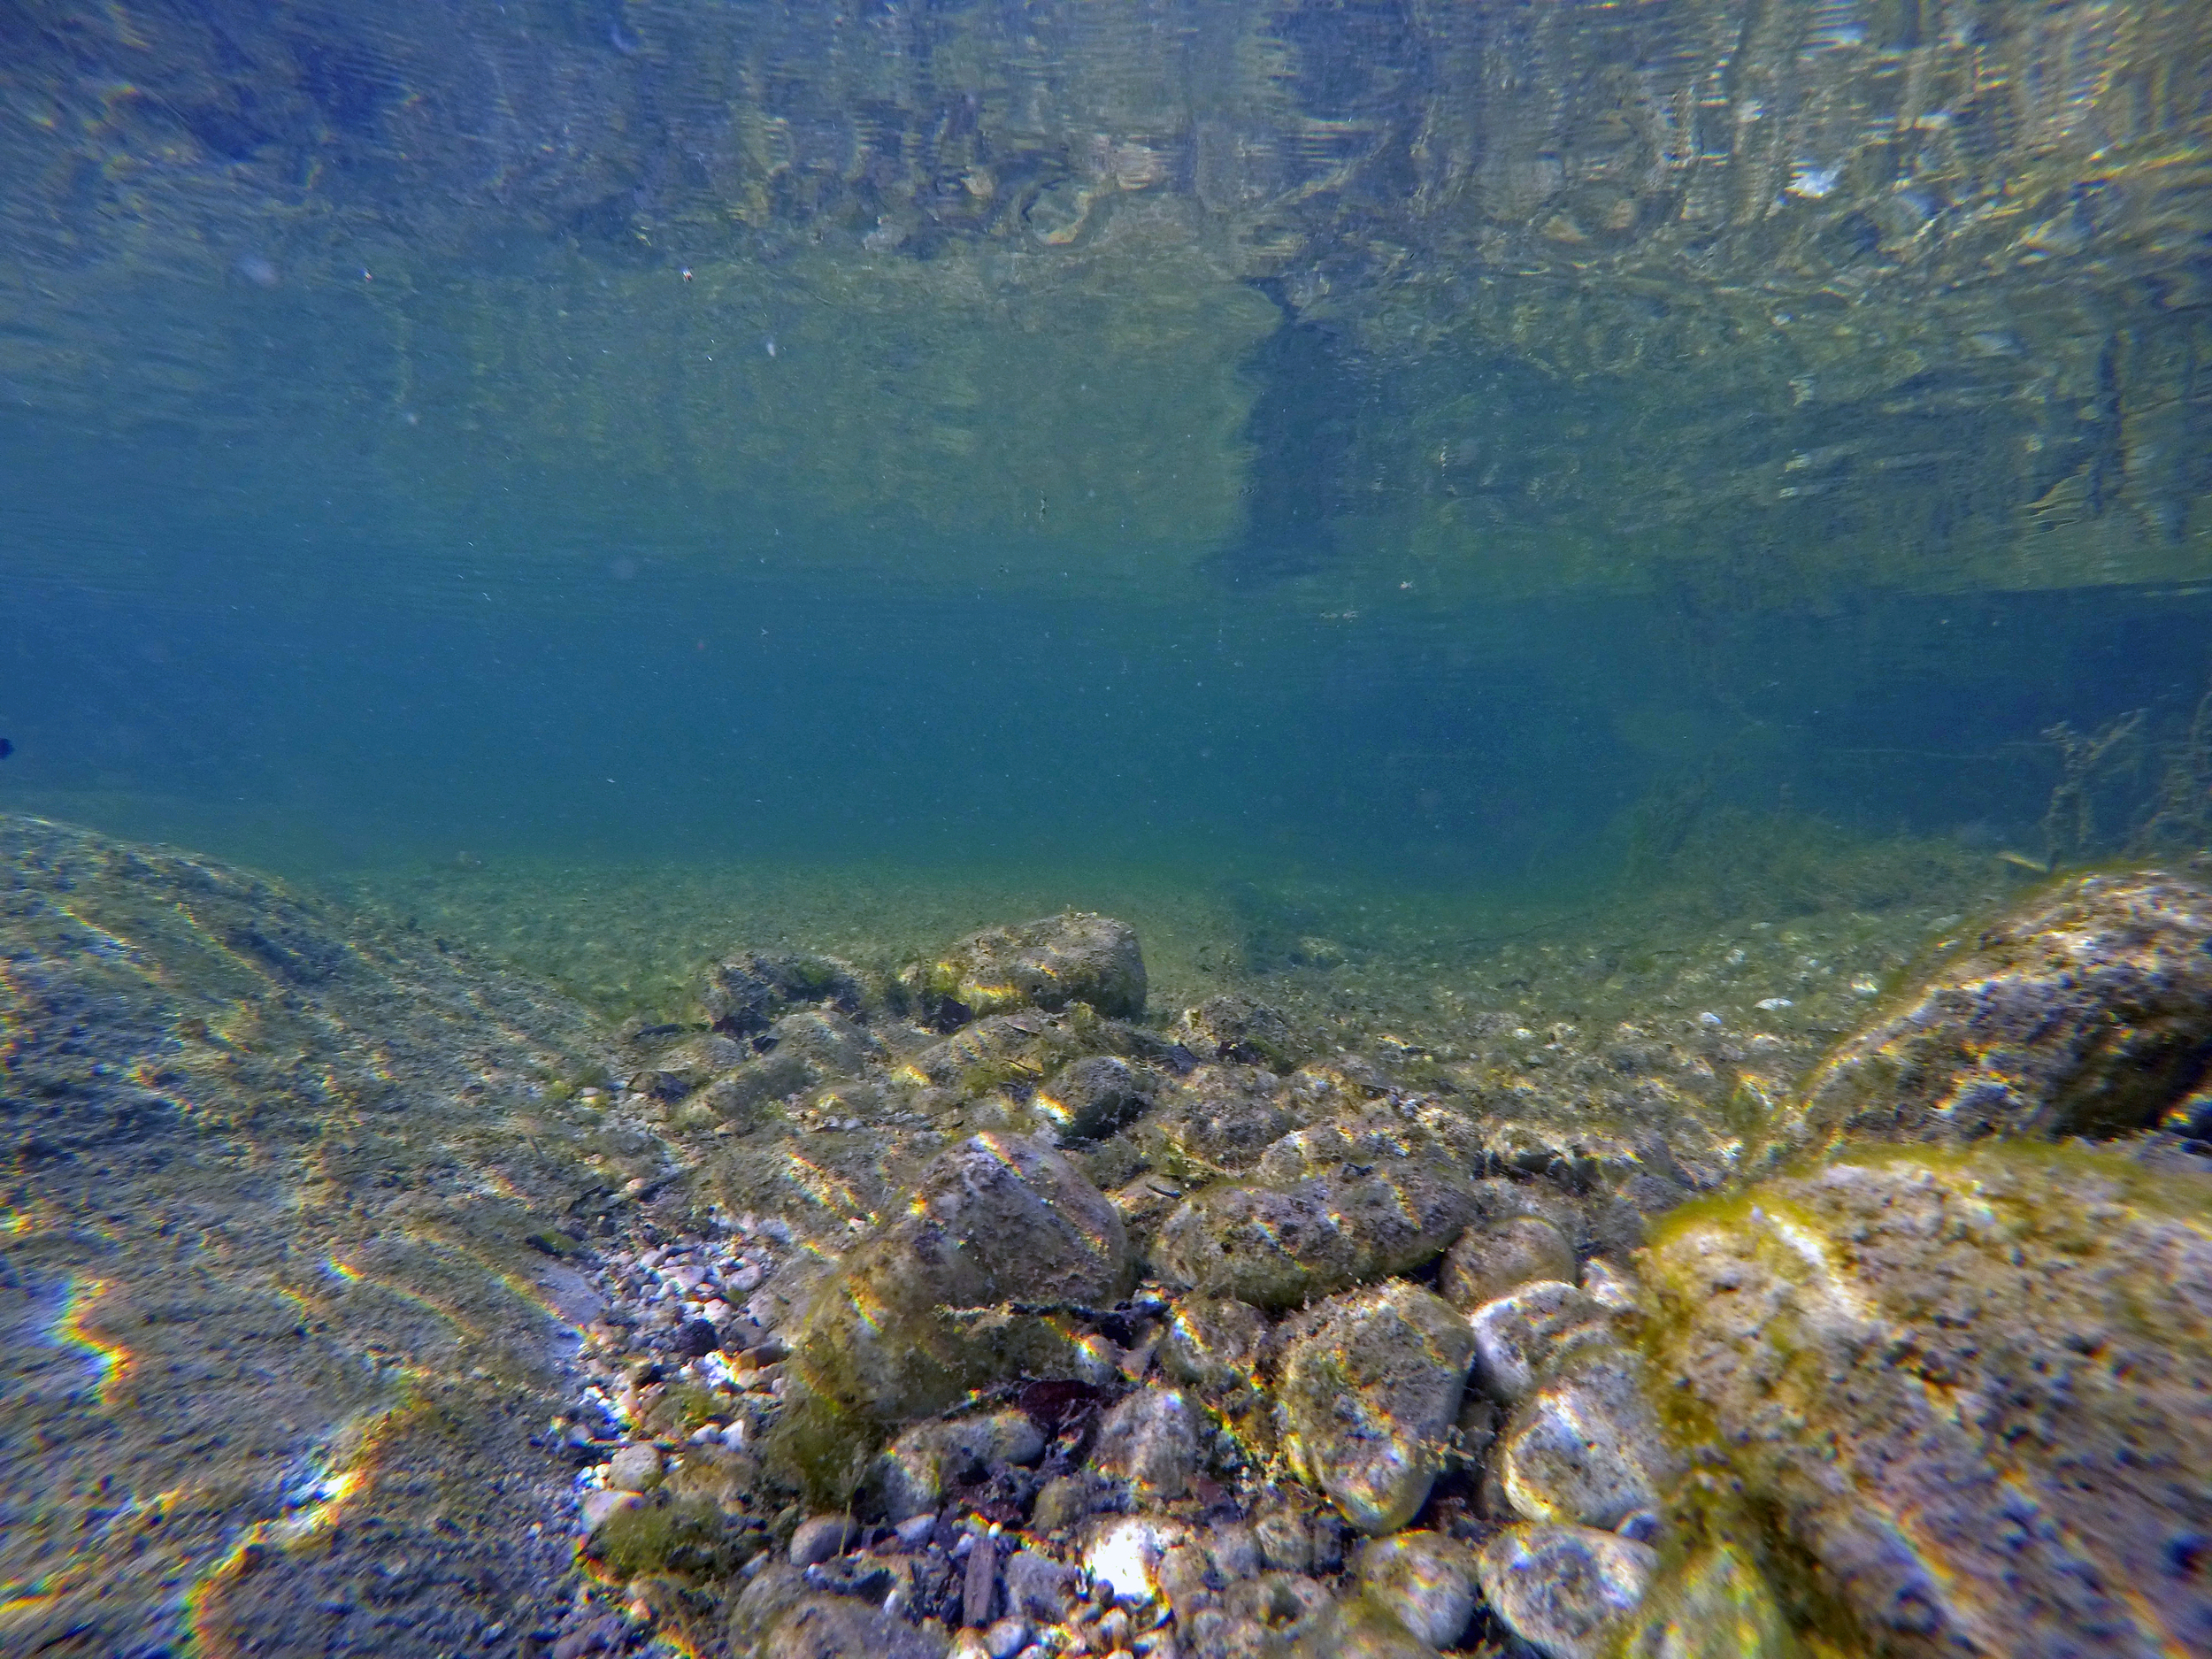 Underwater Shot of the Devils River